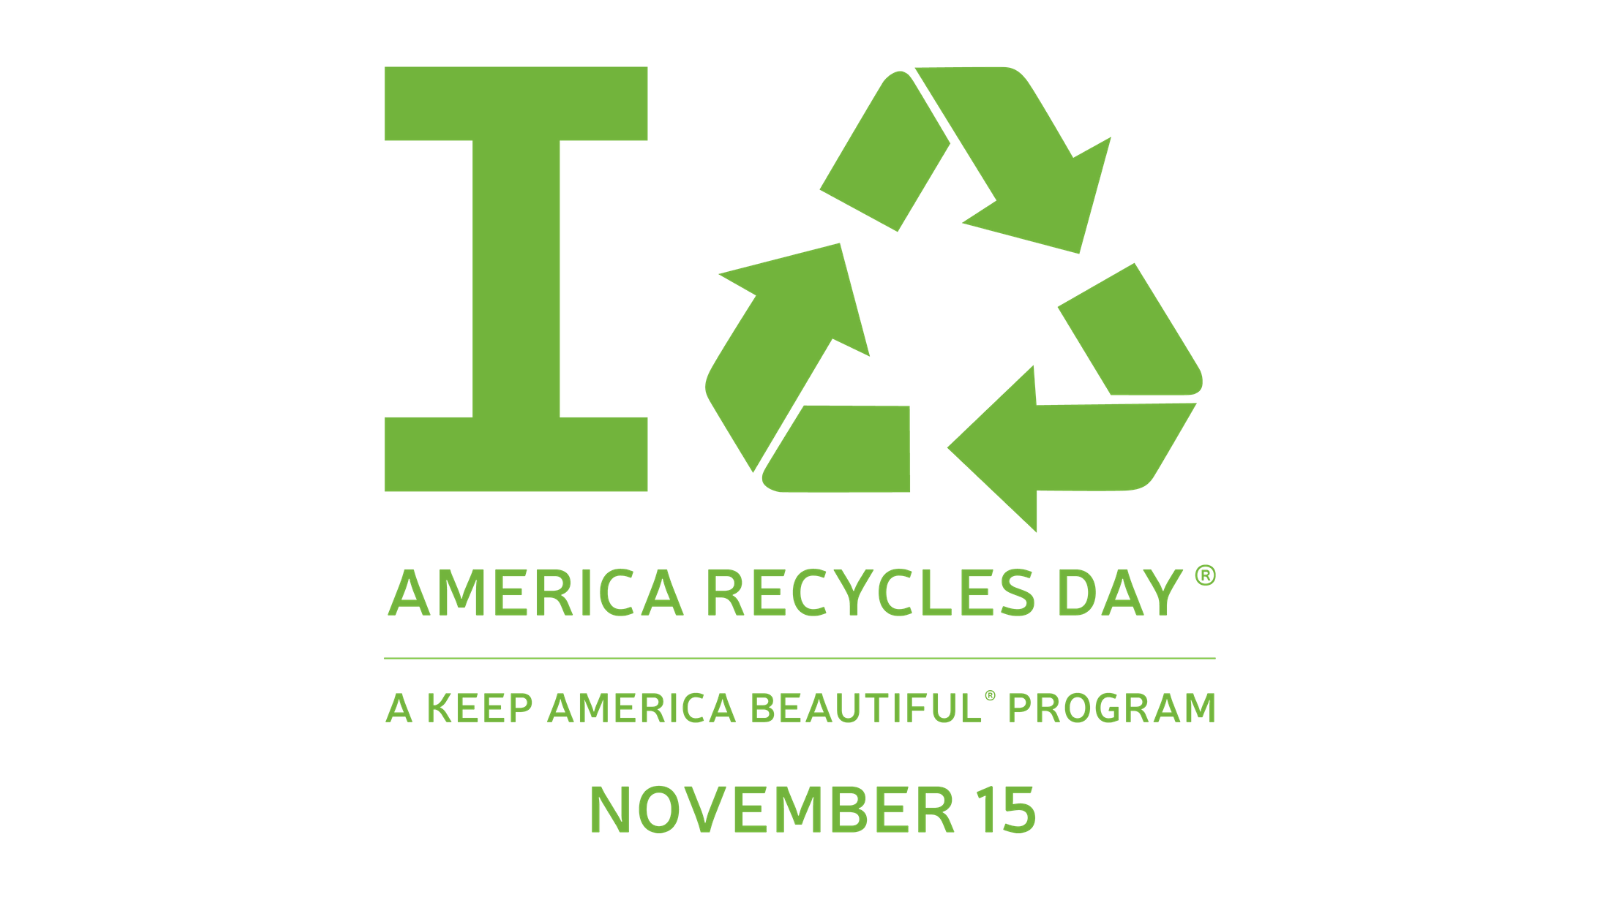 Joint Base San Antonio honored with America Recycles Day Recycling Hero Award